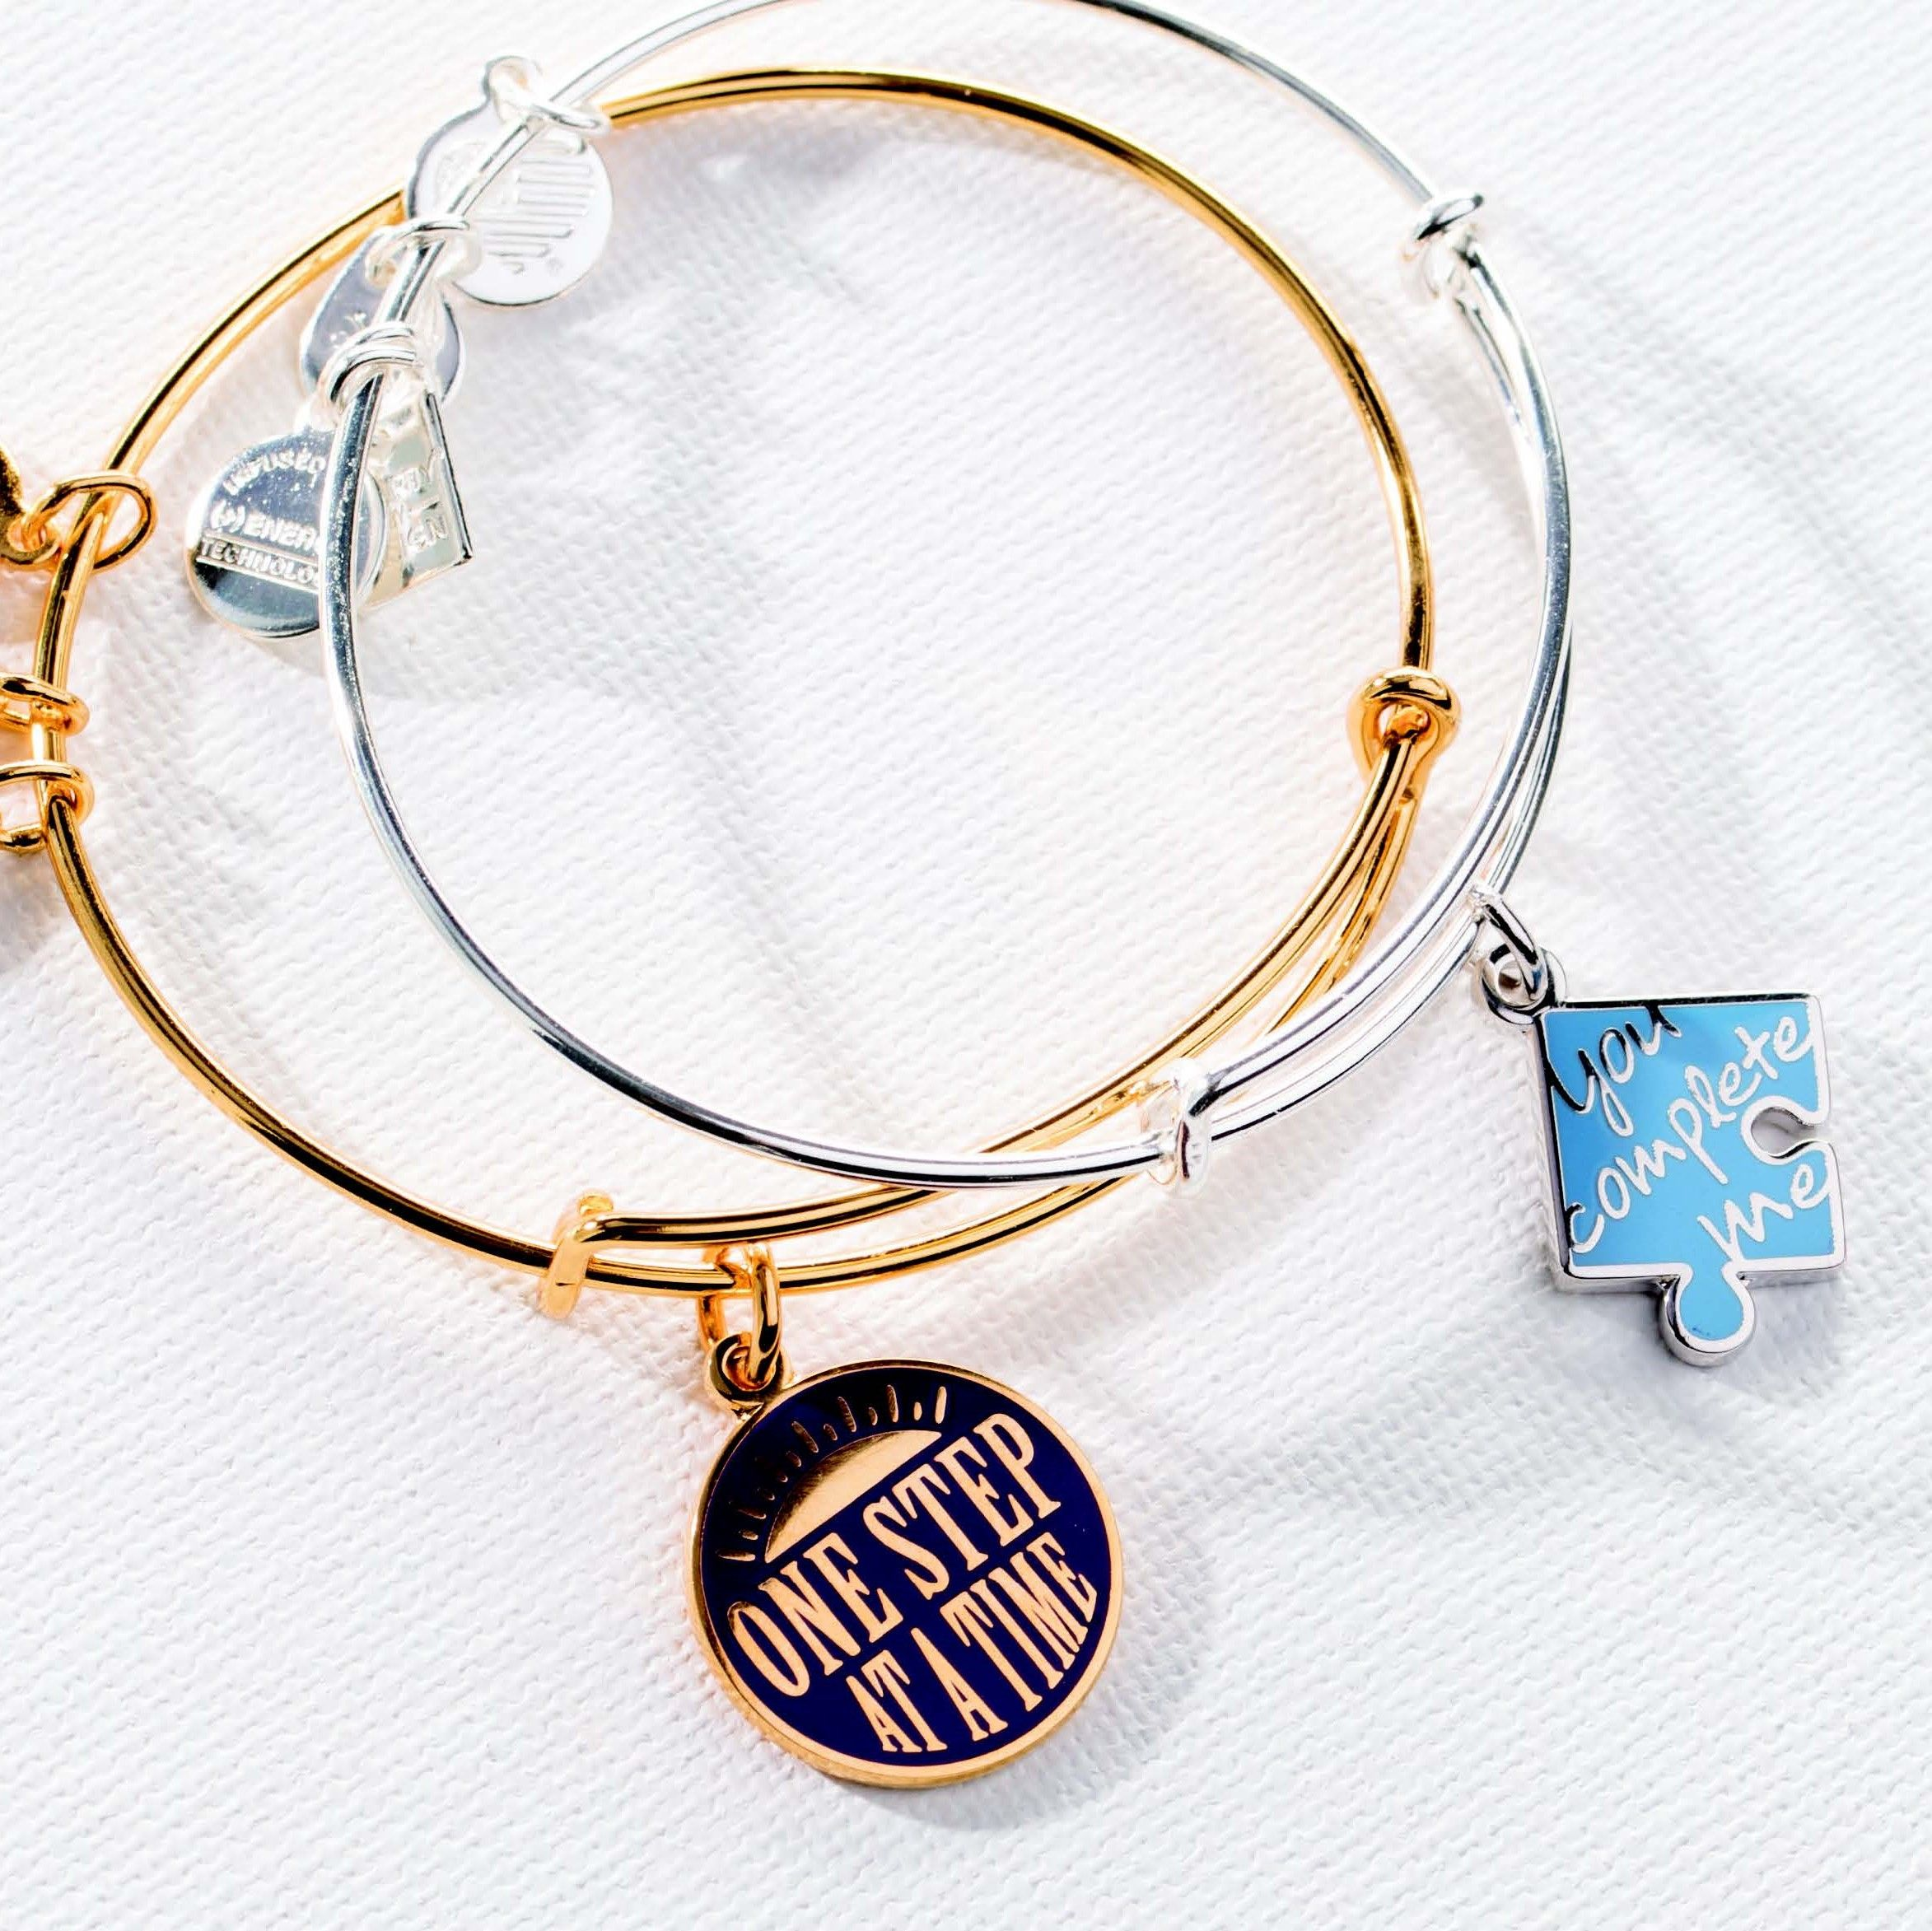 37+ Who sells alex and ani jewelry ideas in 2021